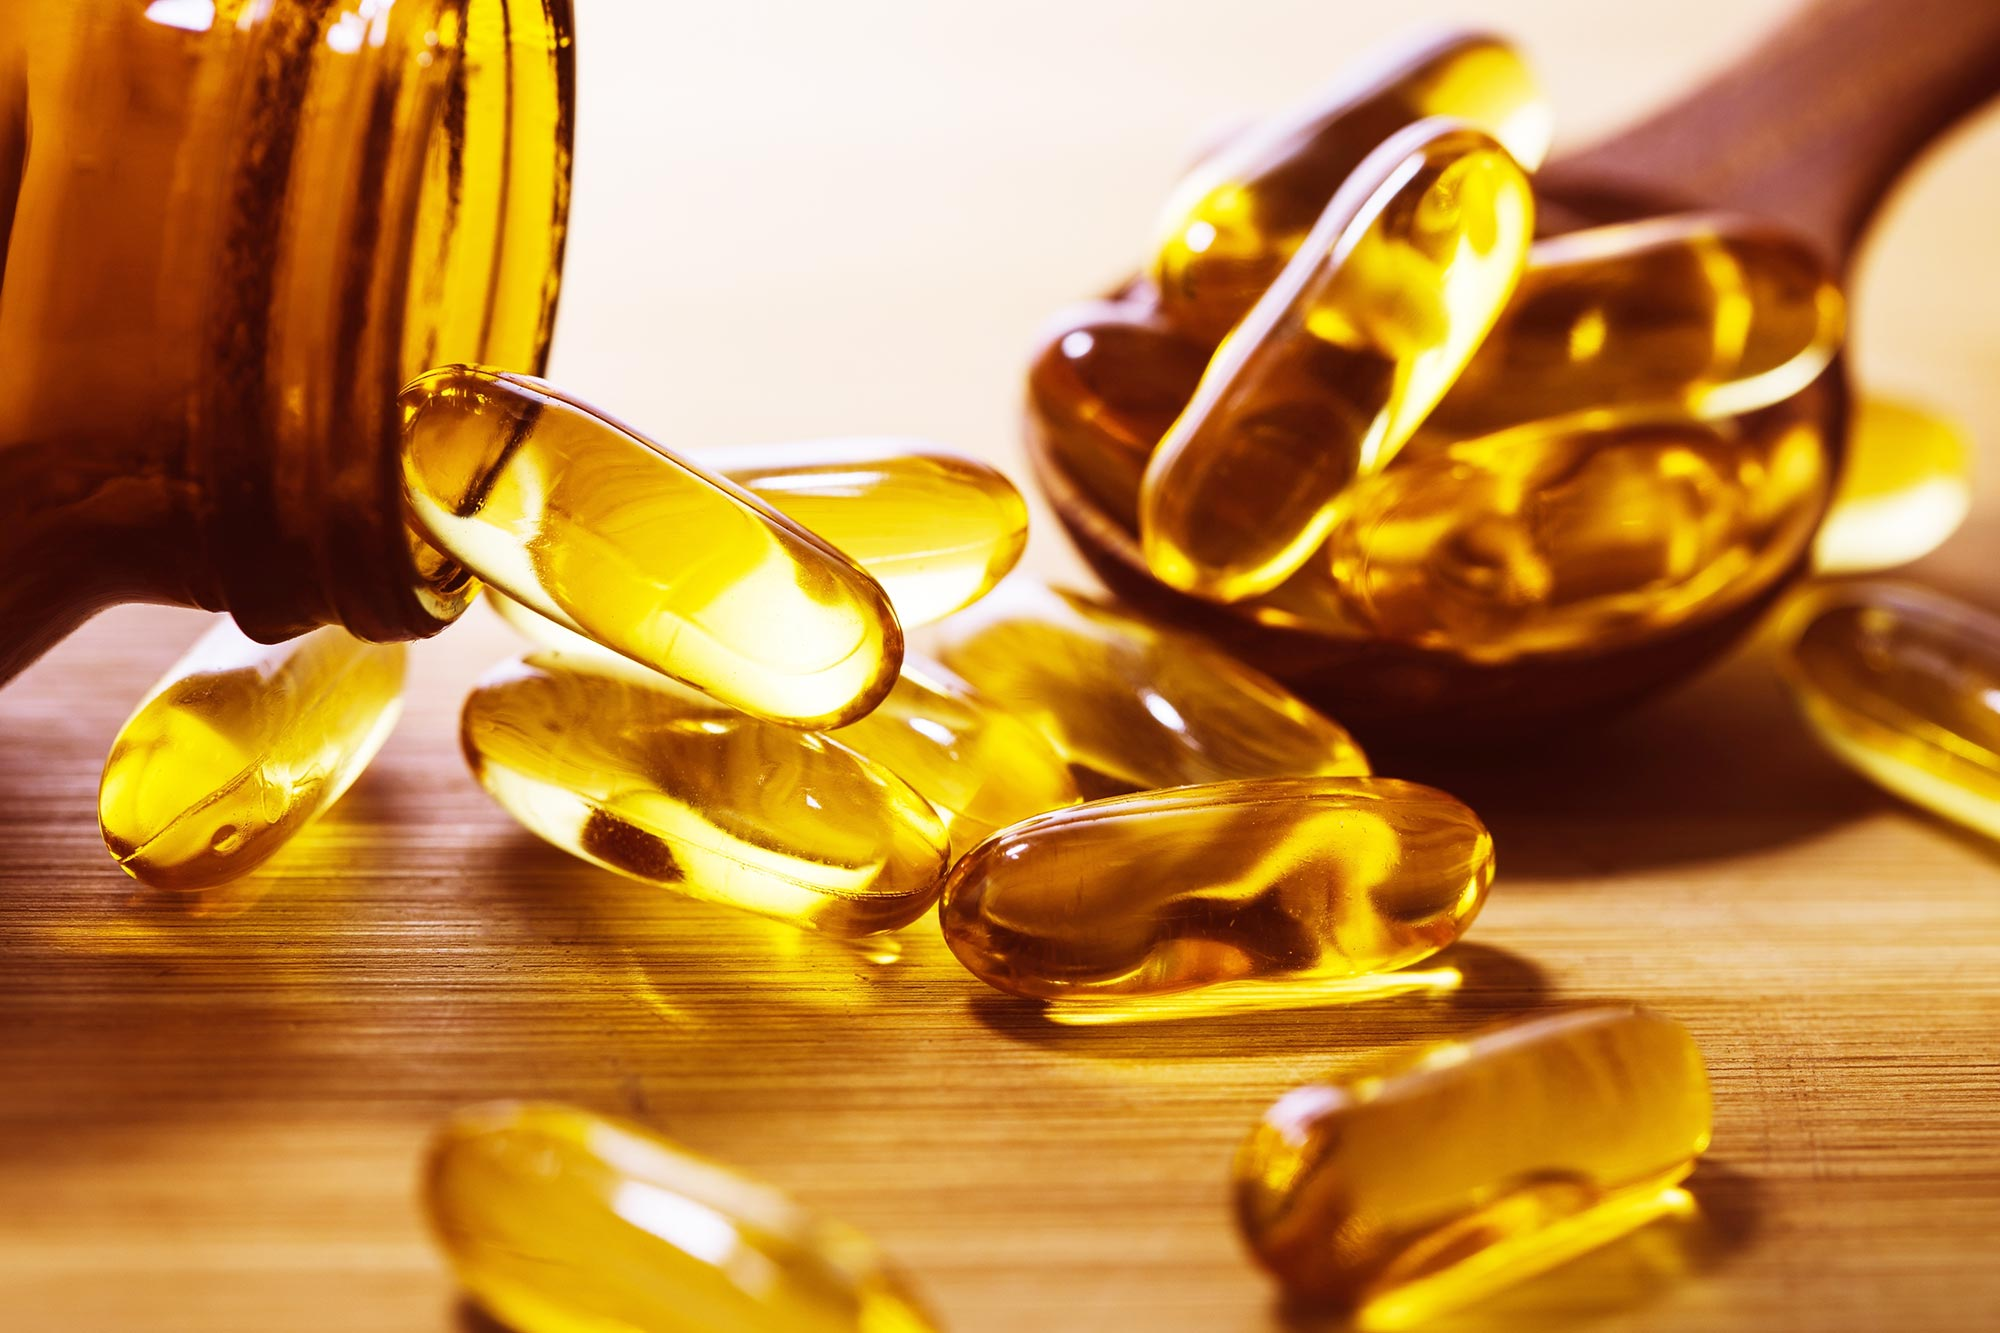 The Omega-3 Fatty Acid That Can Significantly Improve Heart Health